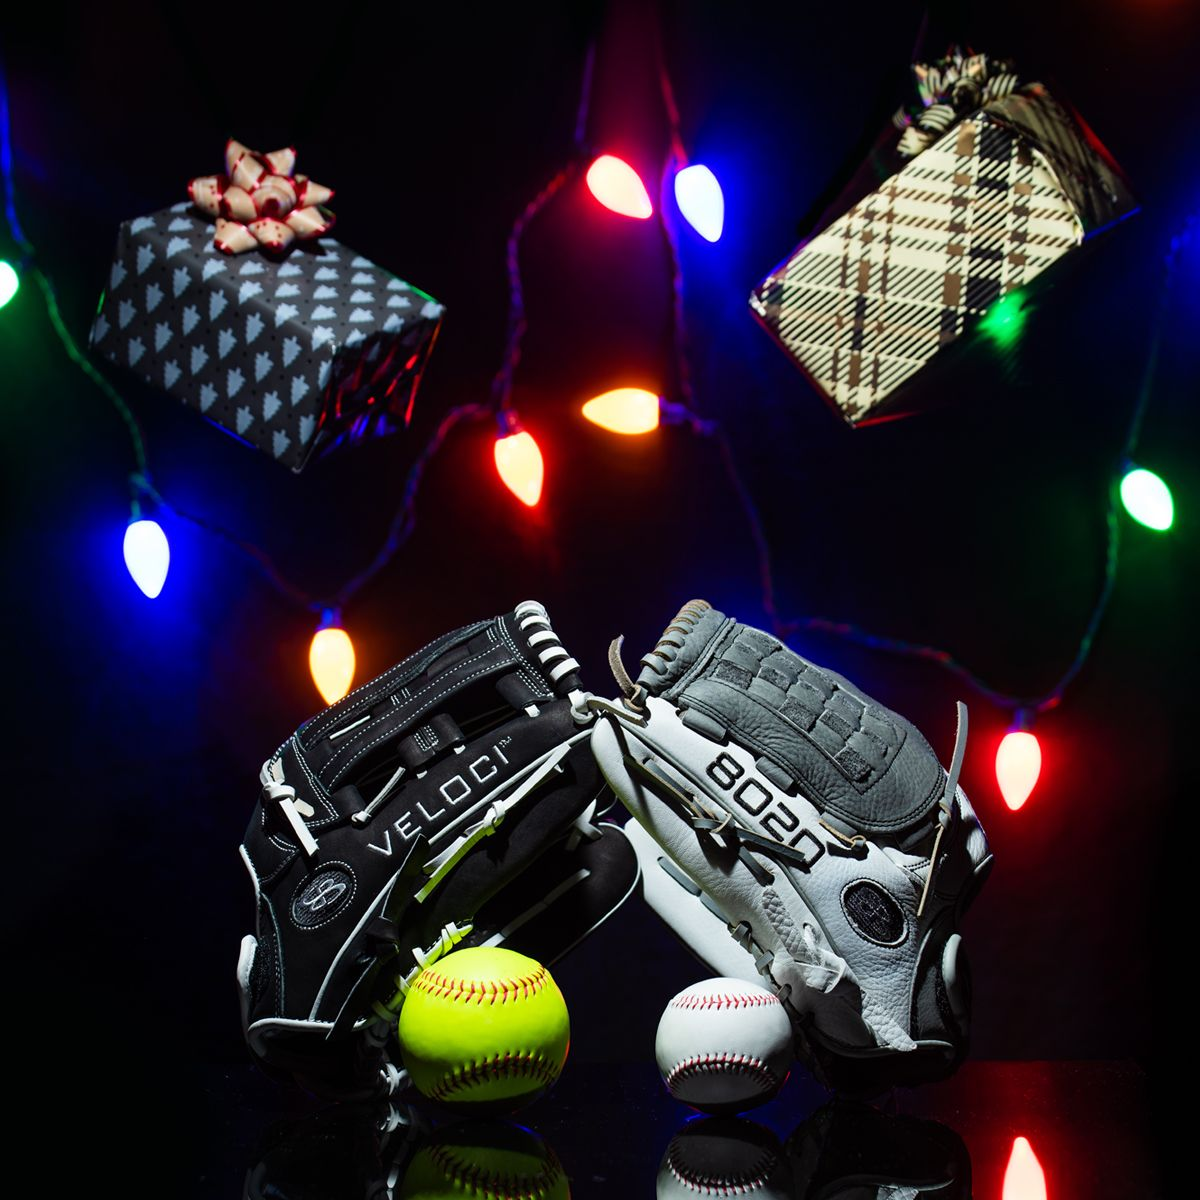 Cyber Monday Is Here And It S The Final Day To Save Boombah Boombahgear Batbag Batpack Glo Football Gear Volleyball Gear Soccer Gear